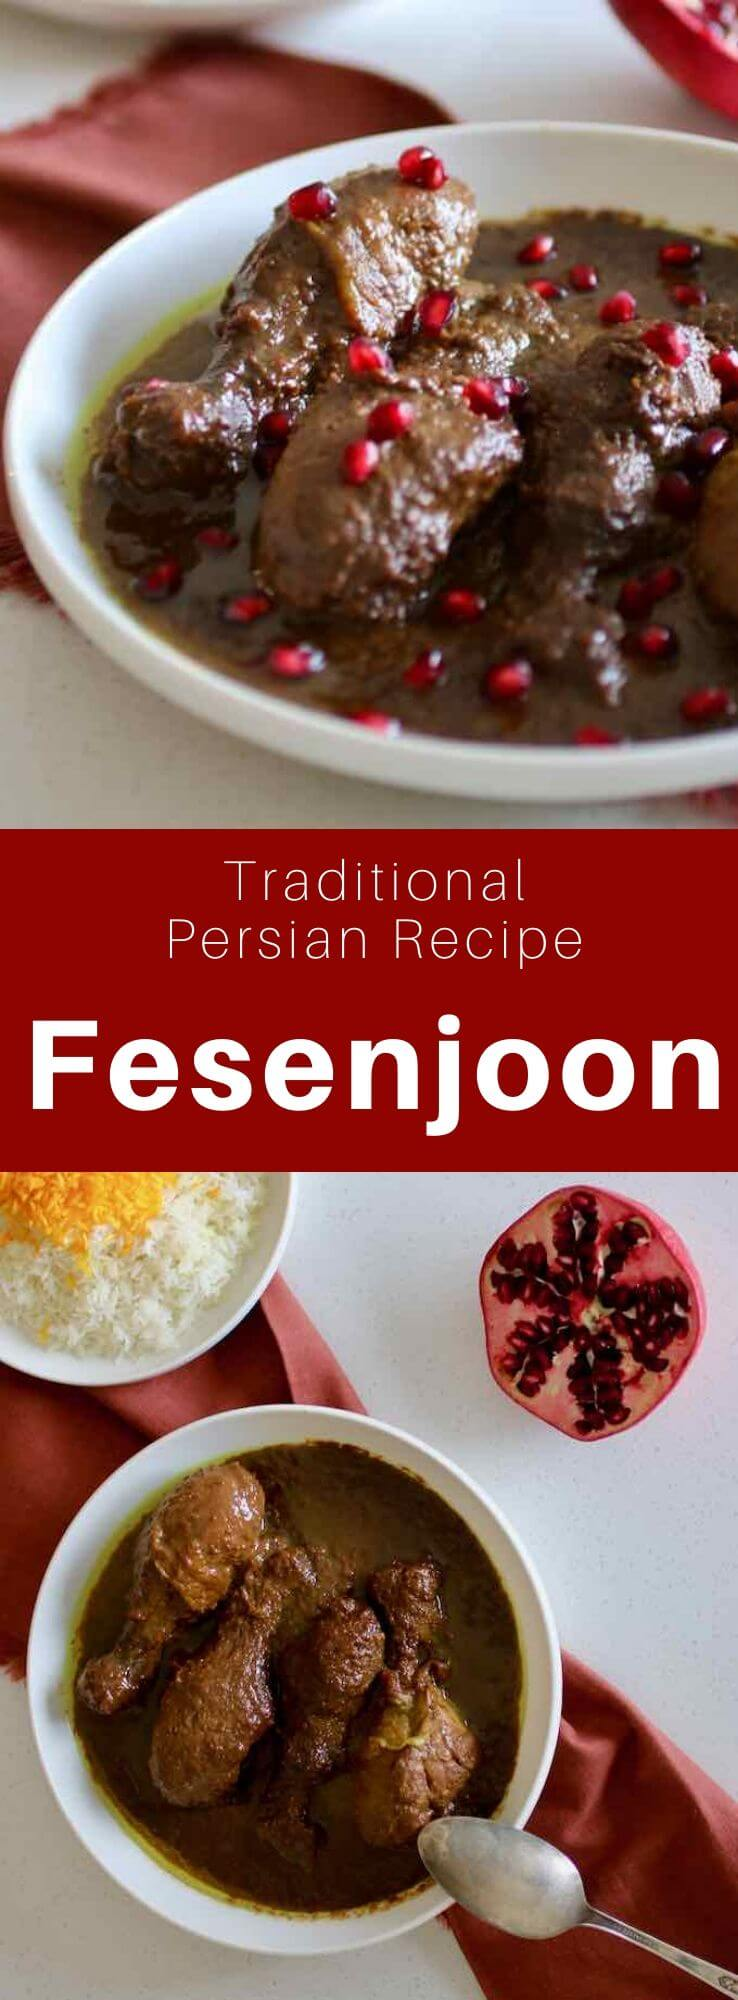 Khoresh-e fesenjān or fesenjoon is a delicious traditional sweet and sour Persian chicken stew made with walnuts and pomegranate. #PersianCuisine #PersianFood #IranianCuisine #IranianFood #WorldCuisine